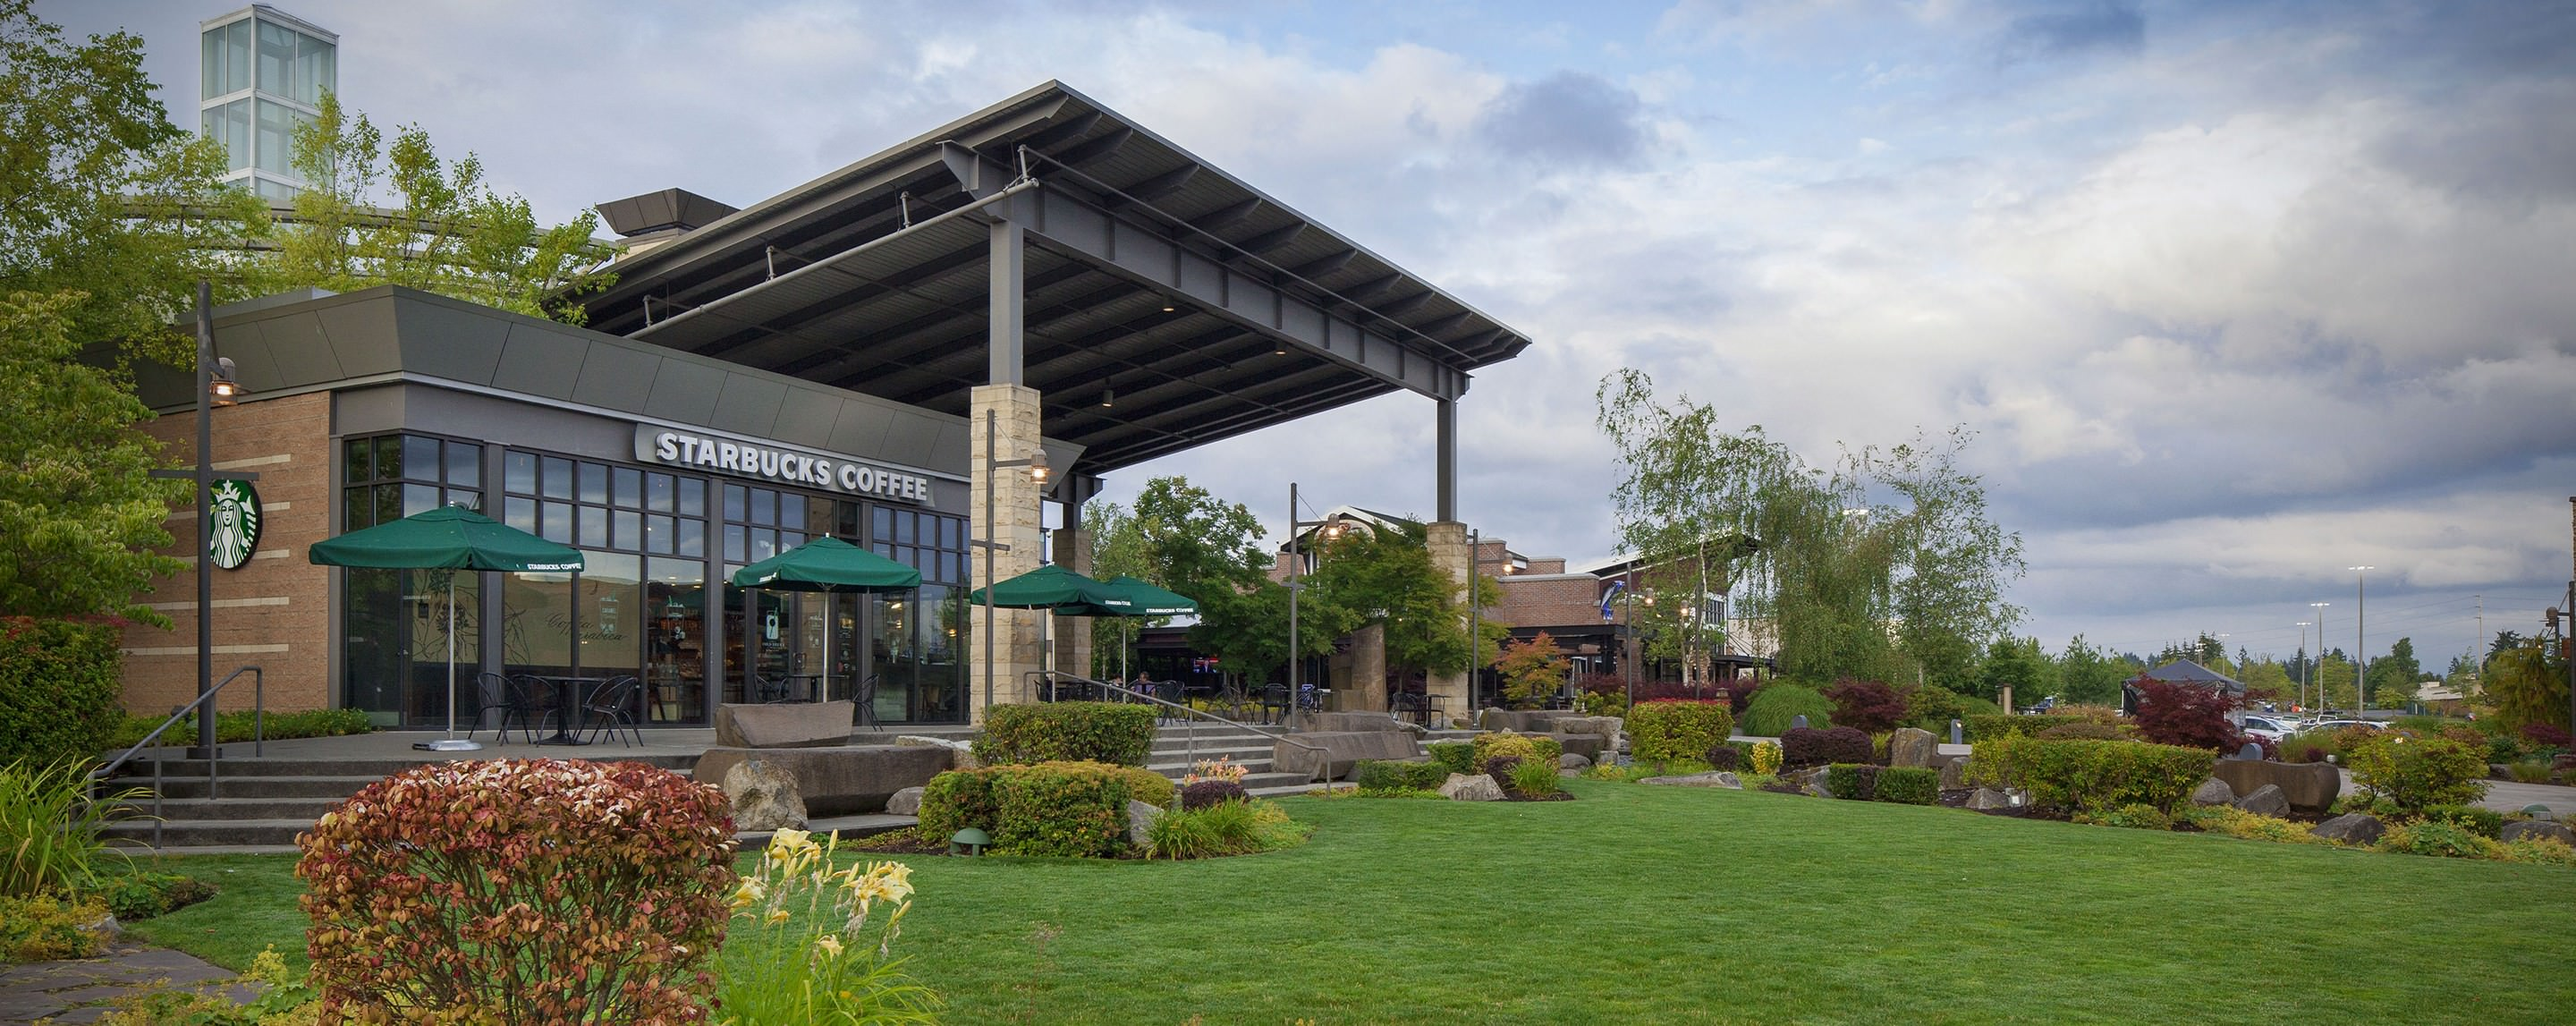 A Starbucks Coffee shop with a large veranda and outdoor patio area compete with a grassy lawn and assorted hedges.